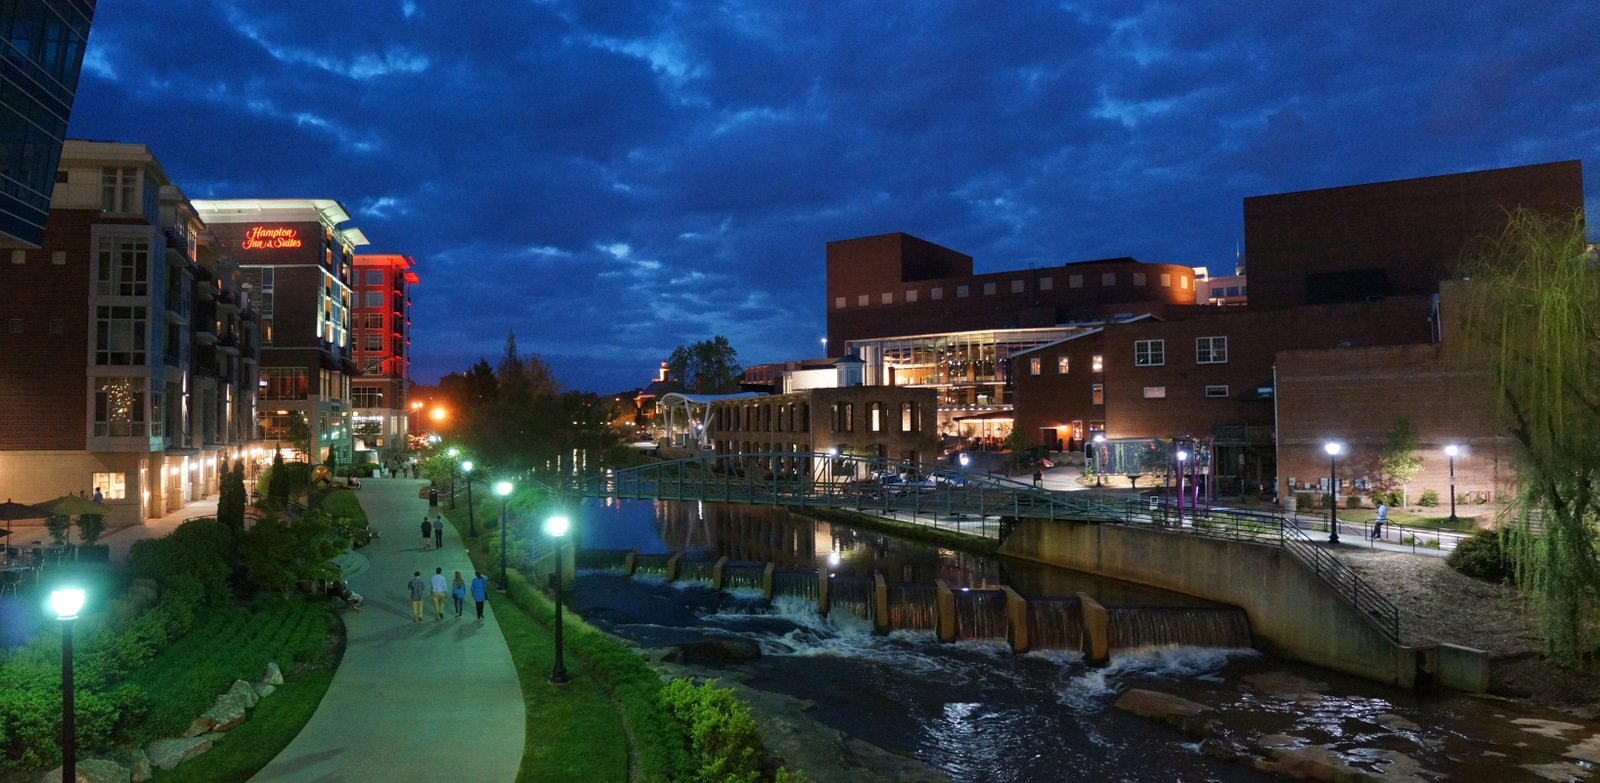 Greenville RiverPlace scene at night